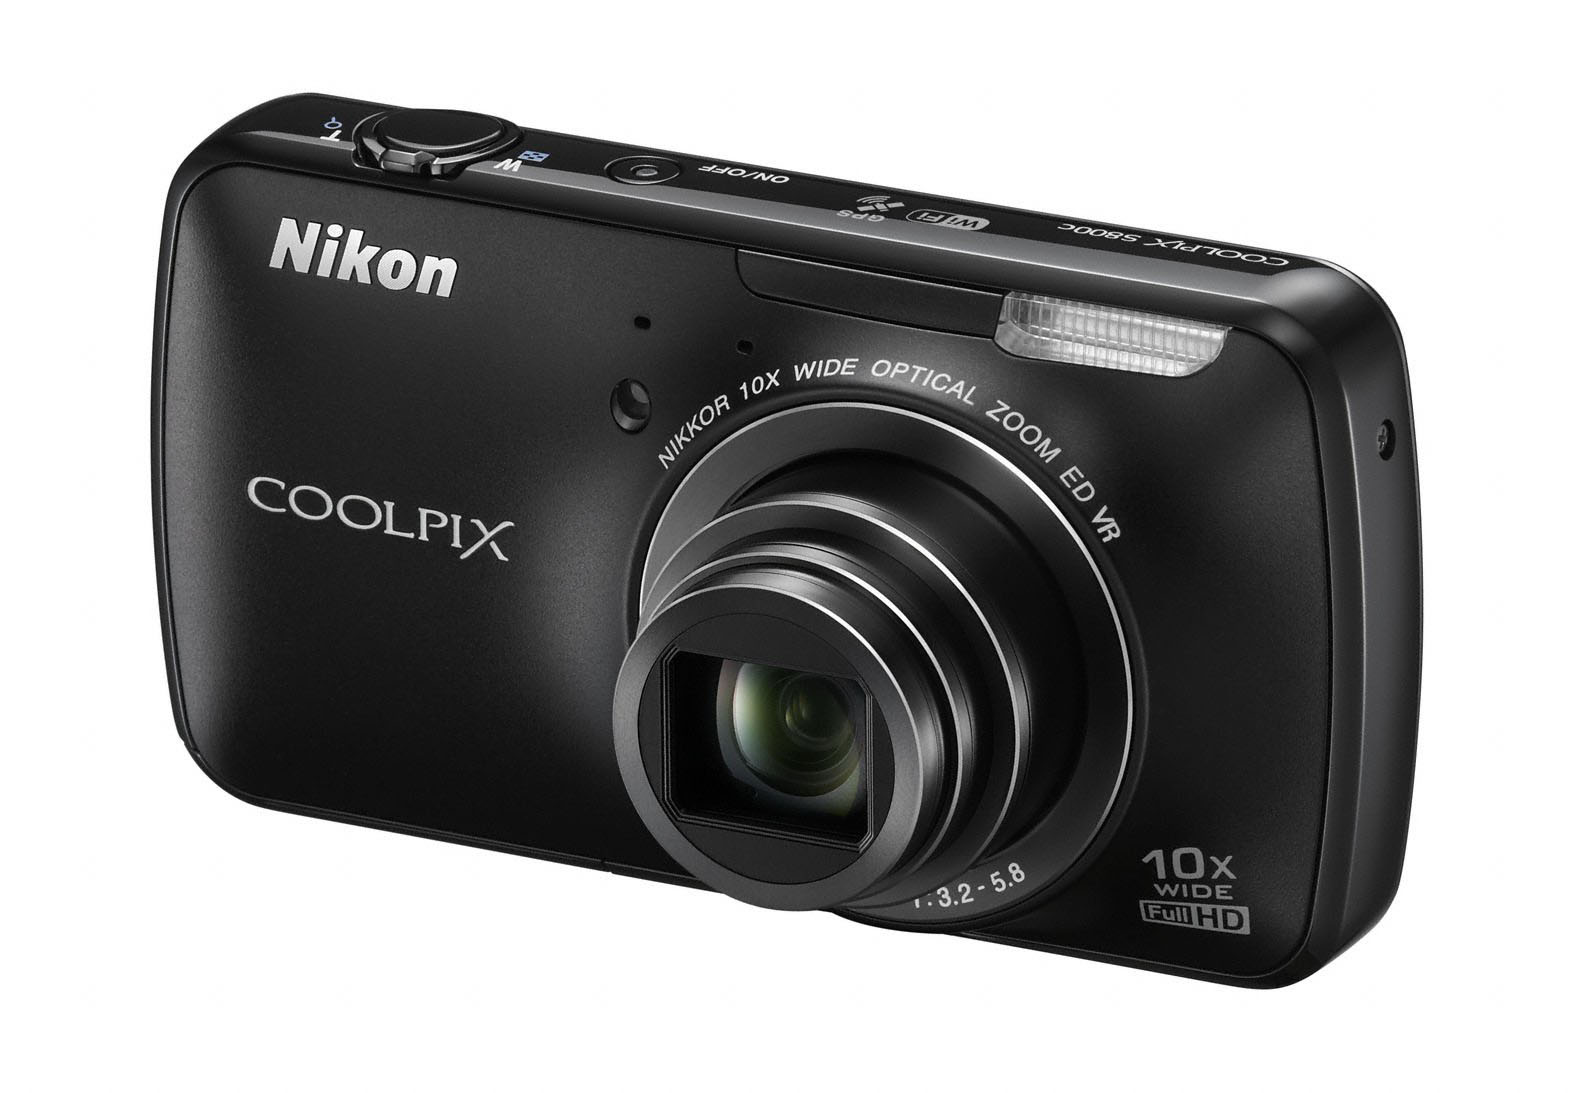 Nikon announces the S800c android compact